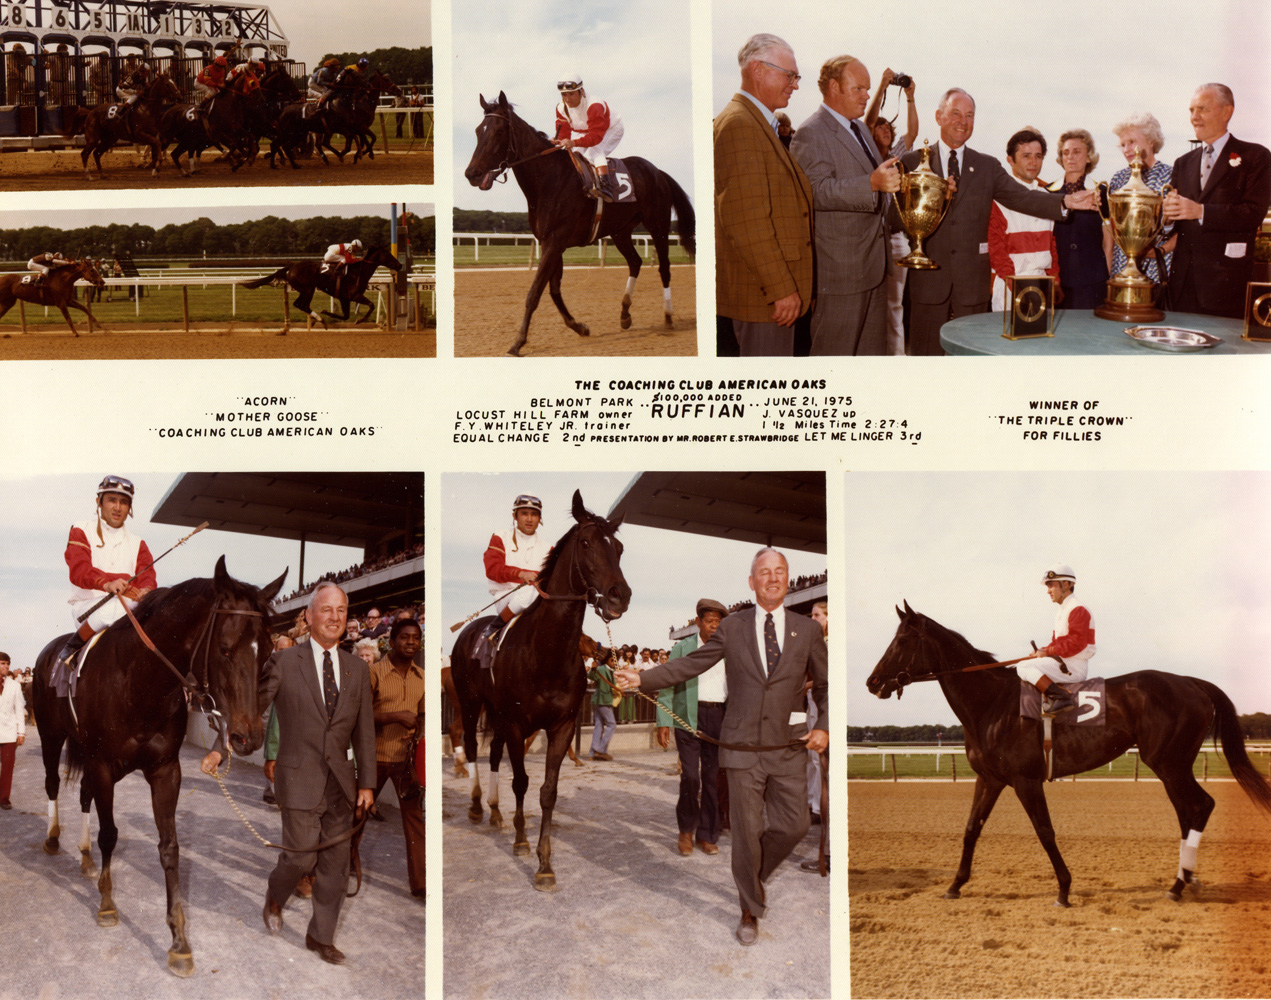 Win composite photograph for the 1975 Coaching Club American Oaks, won by Ruffian with Jacinto Vasquez up (NYRA/Museum Collection)